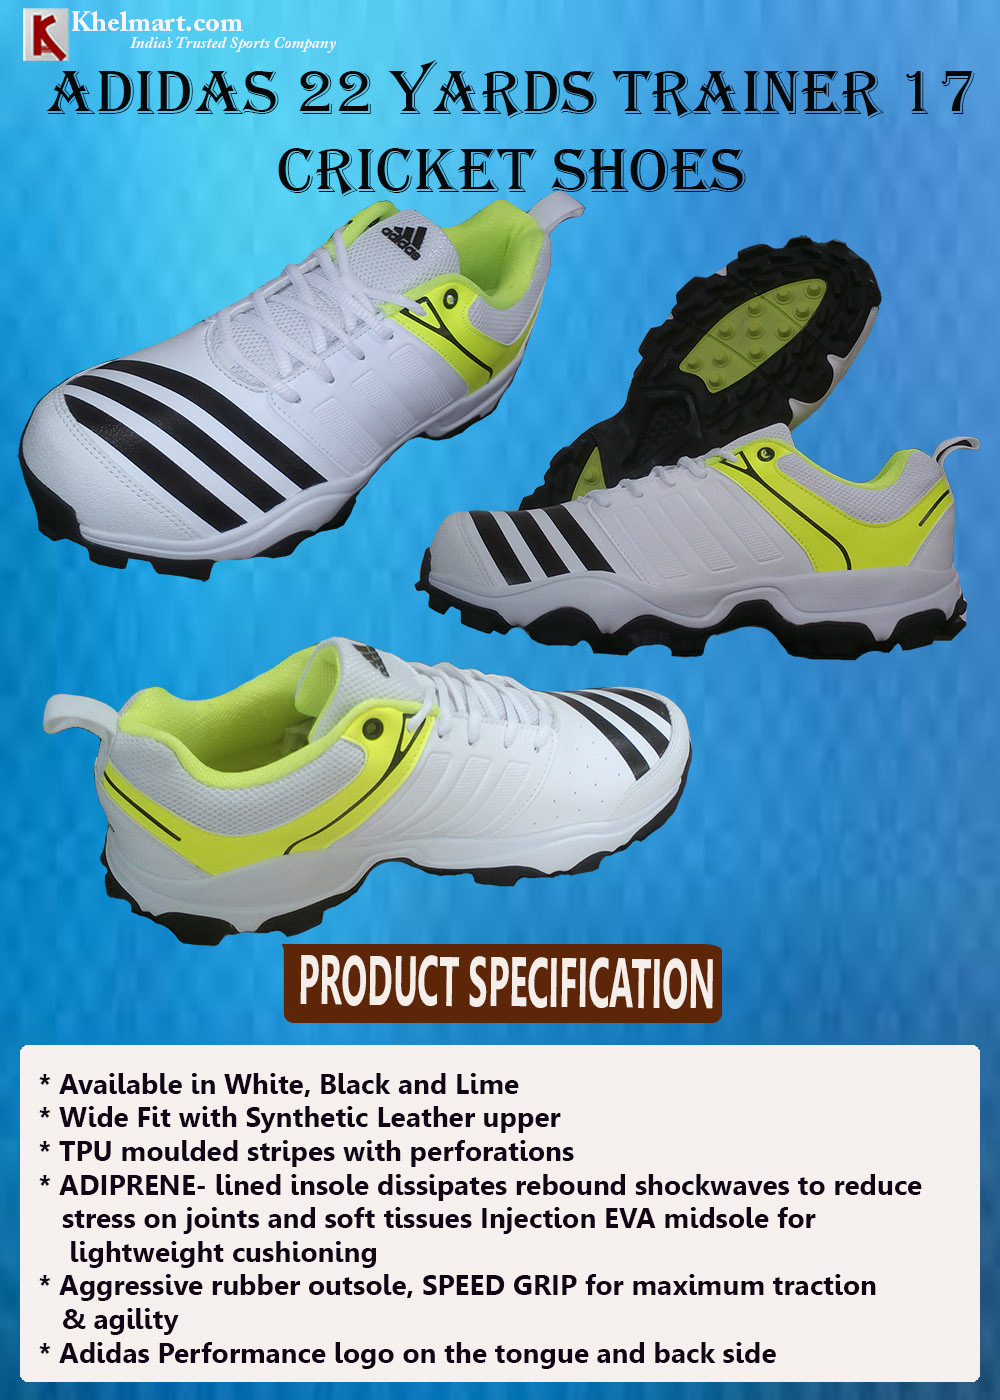 Adidas 22 YARDS TRAINER 17 Full Stud Cricket Shoes_5